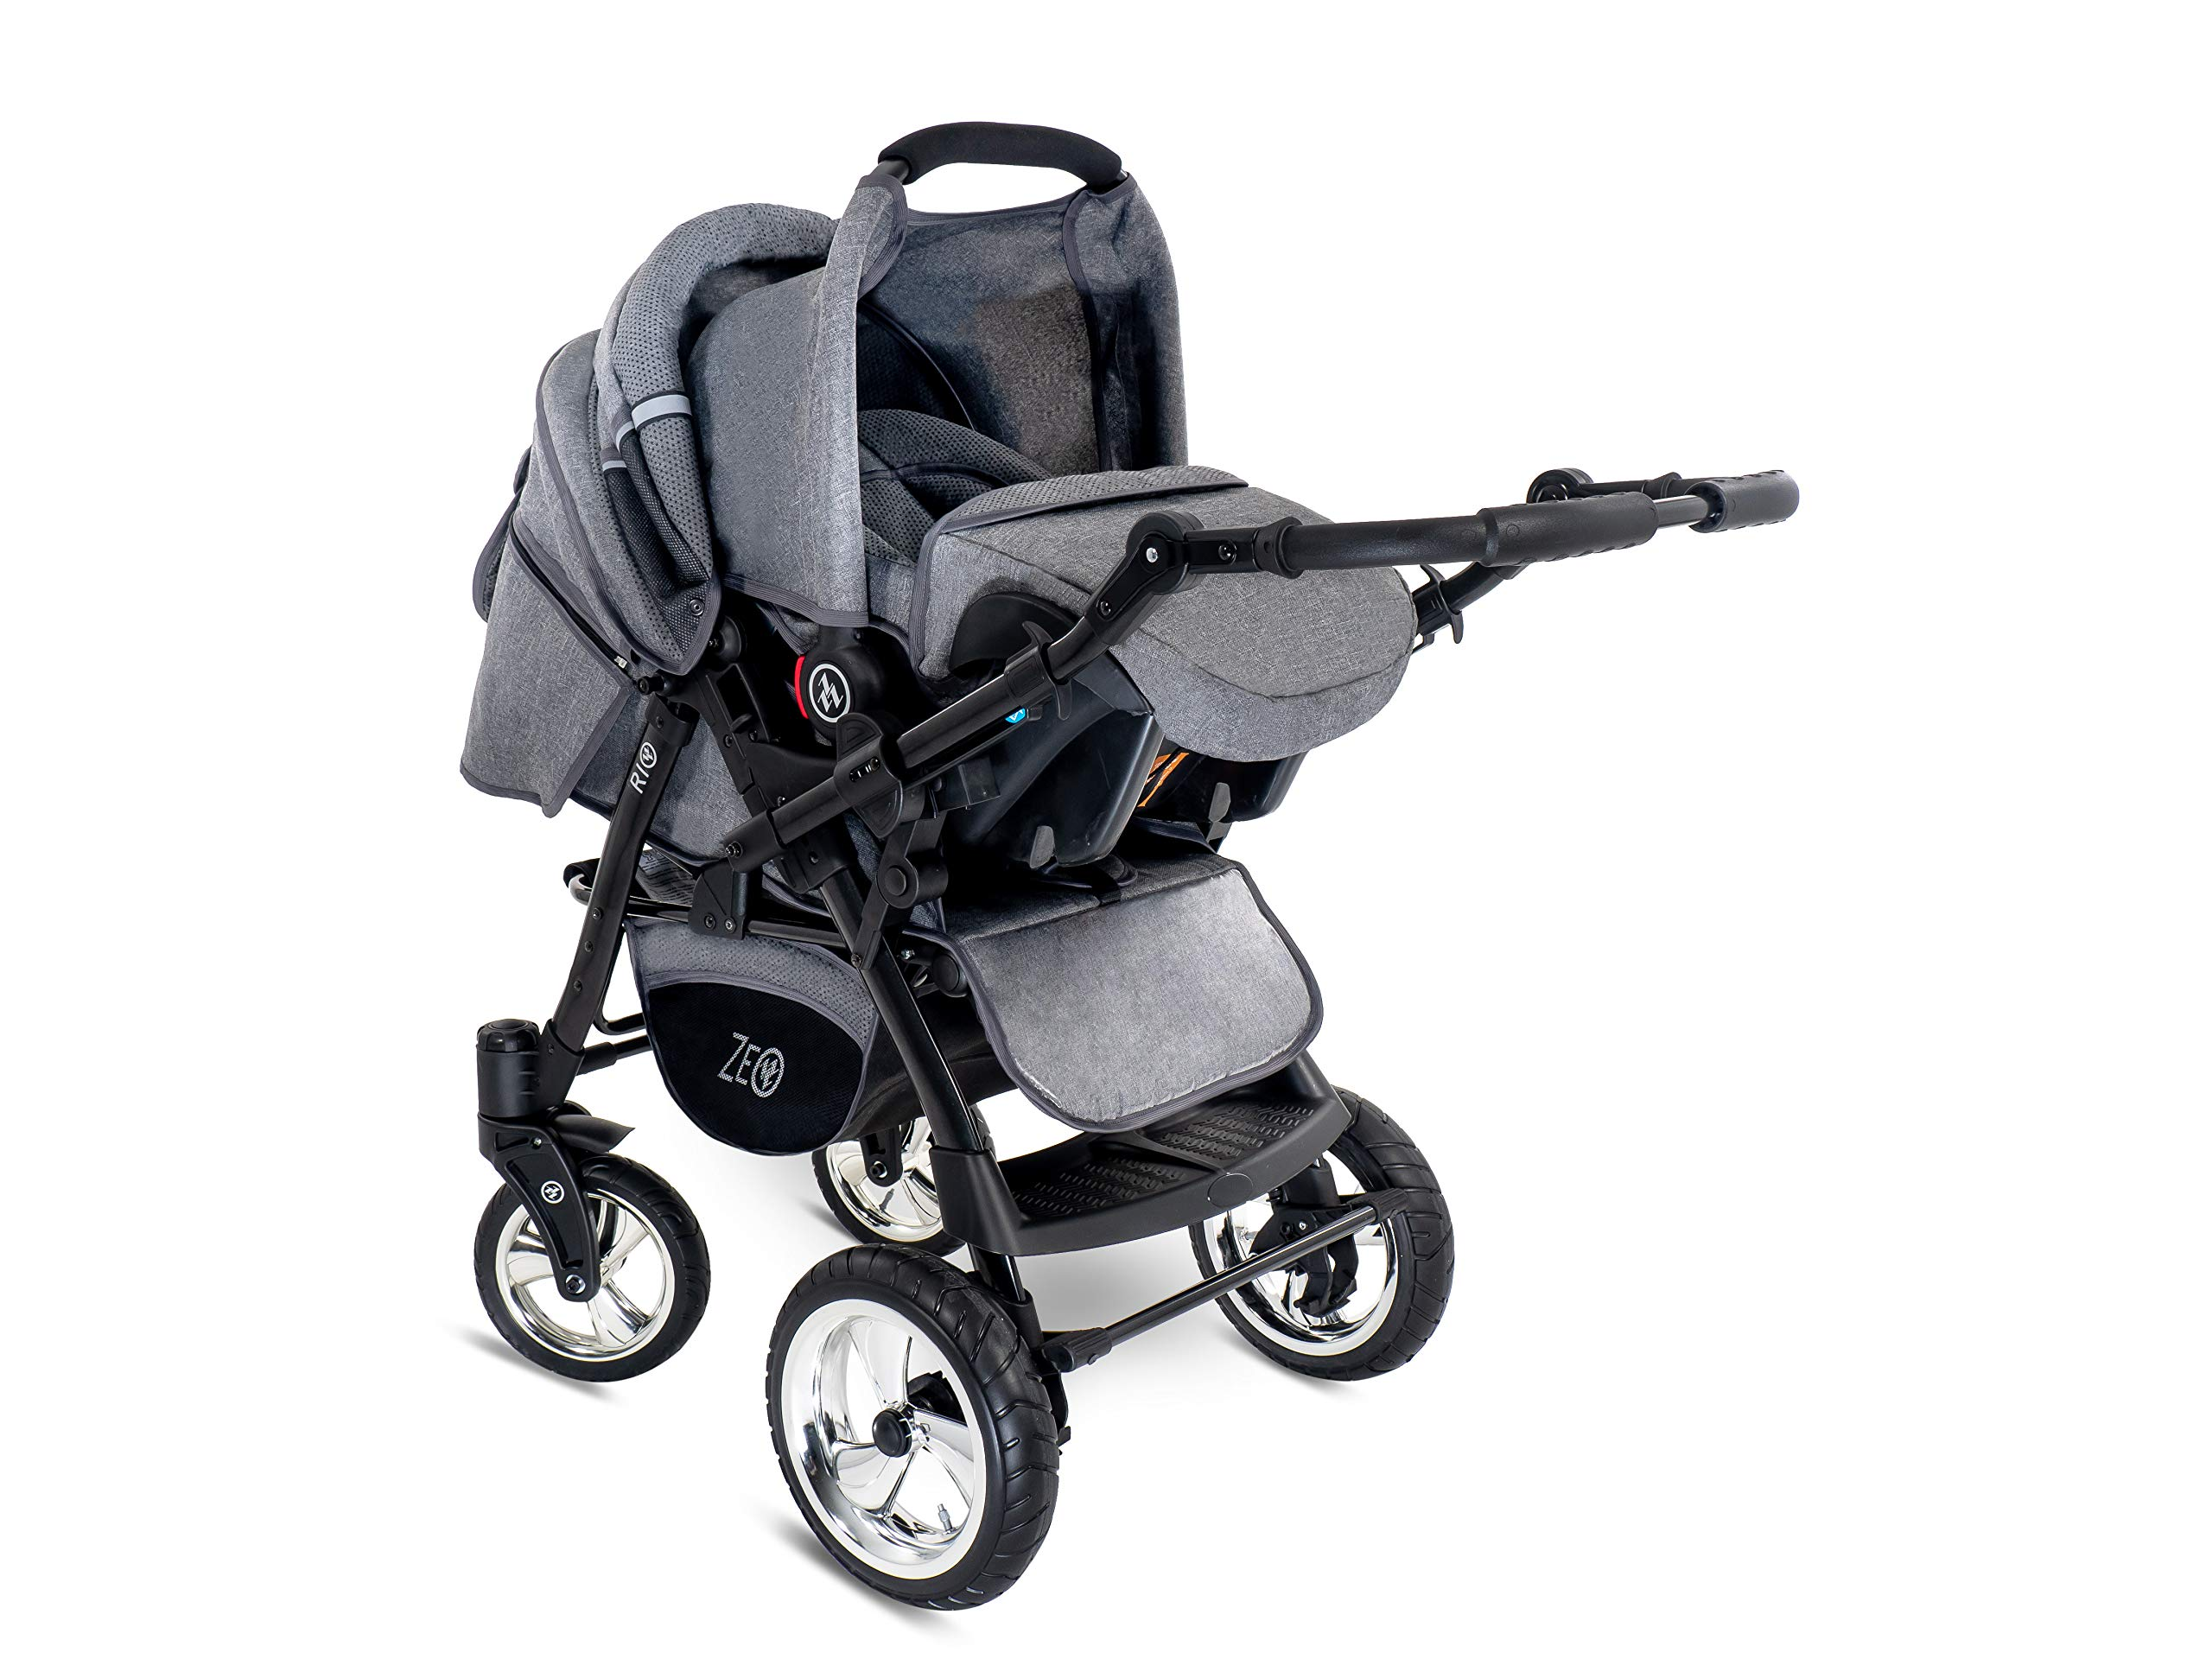 Baby Pram Zeo Rio 3in1 Set - All You Need! carrycot Gondola Buggy Pushchair car seat (R3) Zeo 3 in 1 combination stroller complete set, with reversible handle to the buggy, child car seat or baby carriage Has 360 ° swiveling wheels, two-fold suspension, four-stage backrest, five-position adjustable footrest and a five-point safety belt The stroller can be easily converted into other functions and easy to transport 9